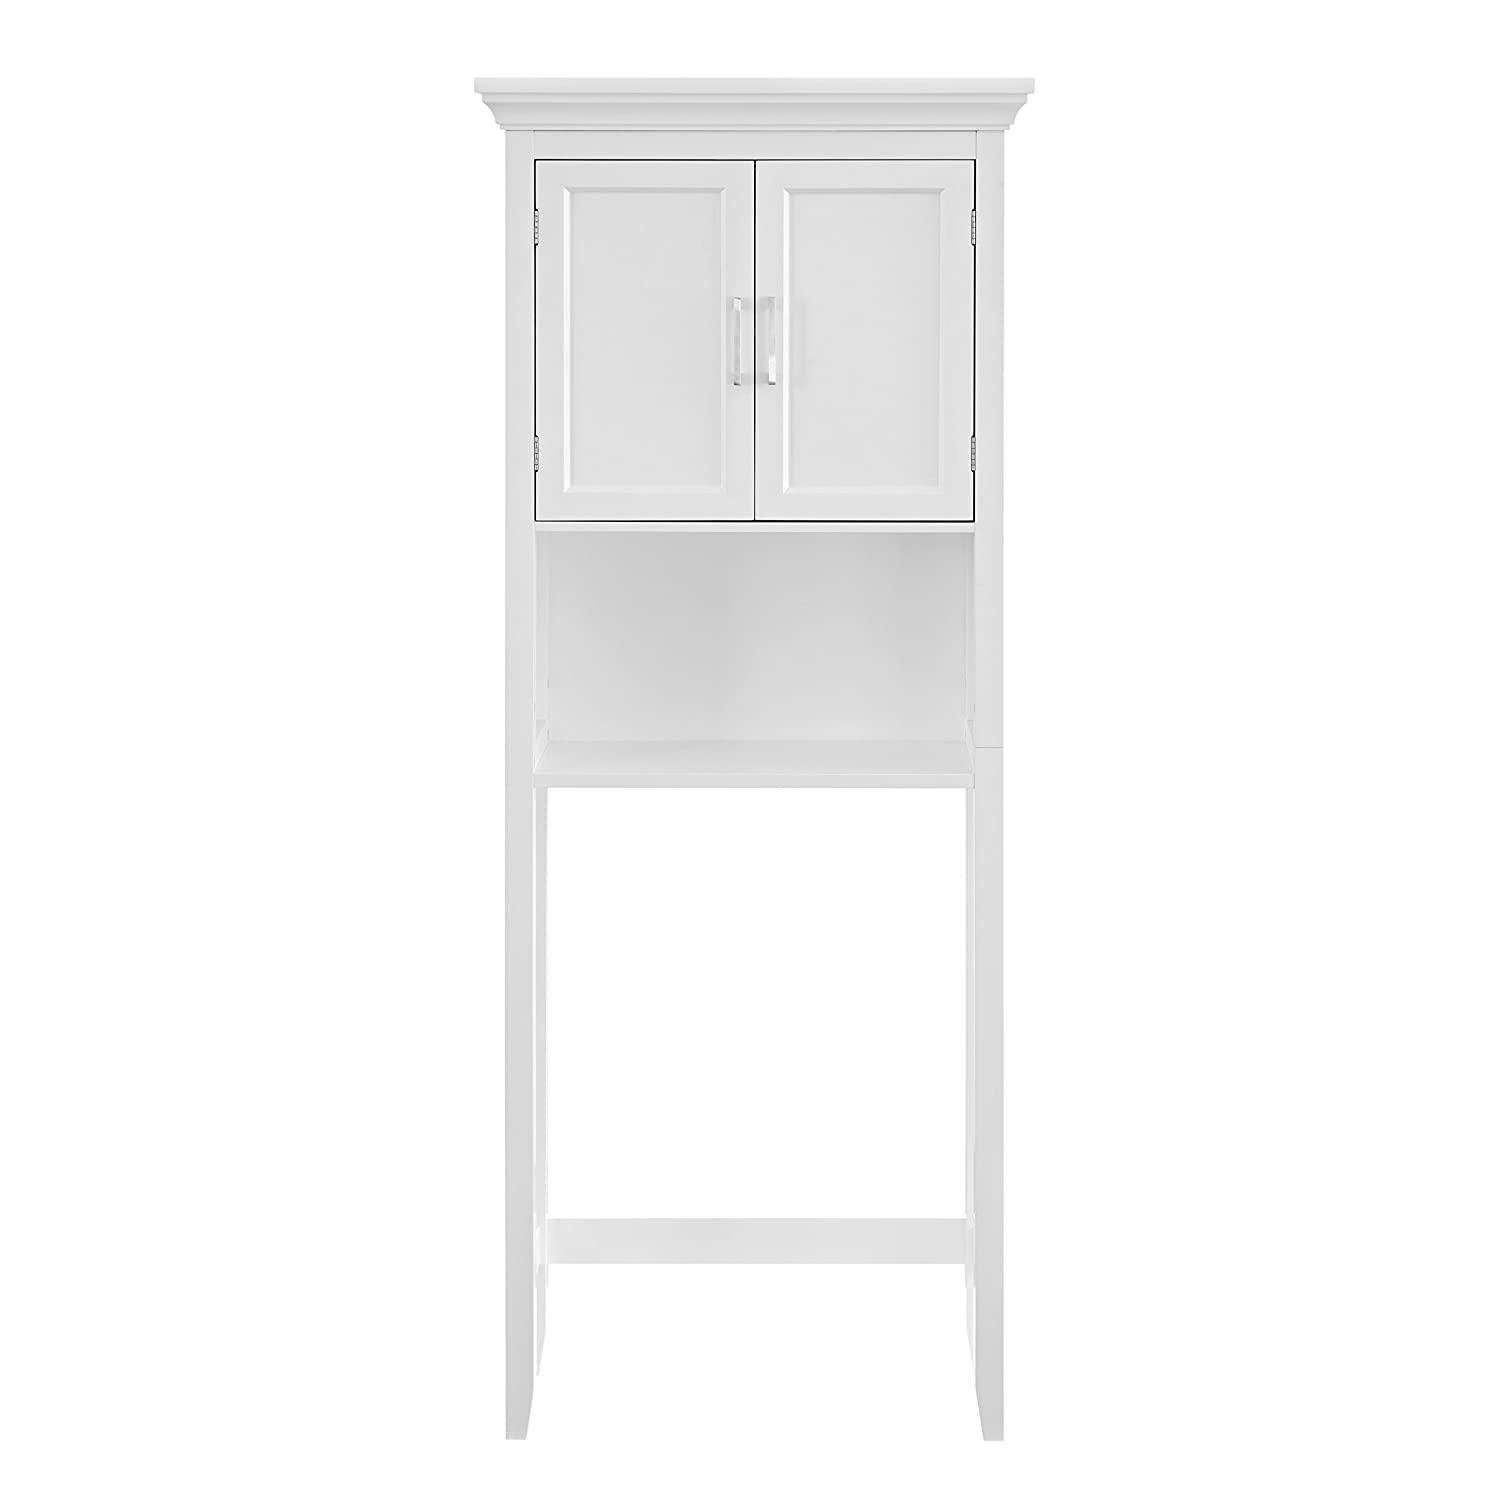 design h shelf free above storage website drawers home stupendous dw toilet ideas pleasing x standing the unfinished w over tms bathroom cabinet alluring